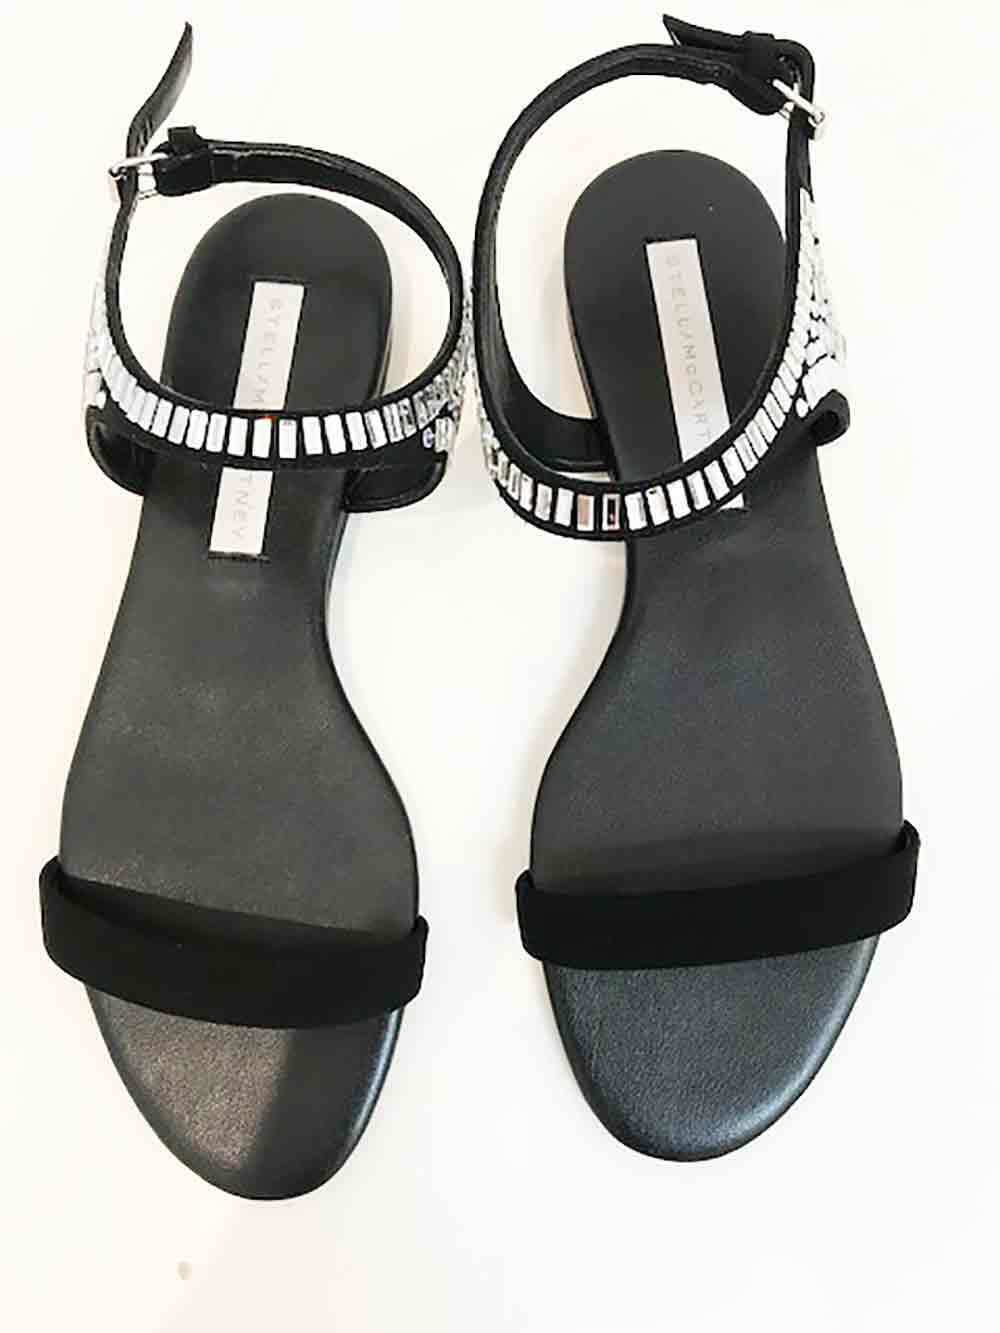 Designer BNWB Stella McCartney Dimensione 39 Crystal Embellished nero Wouomo Sandals